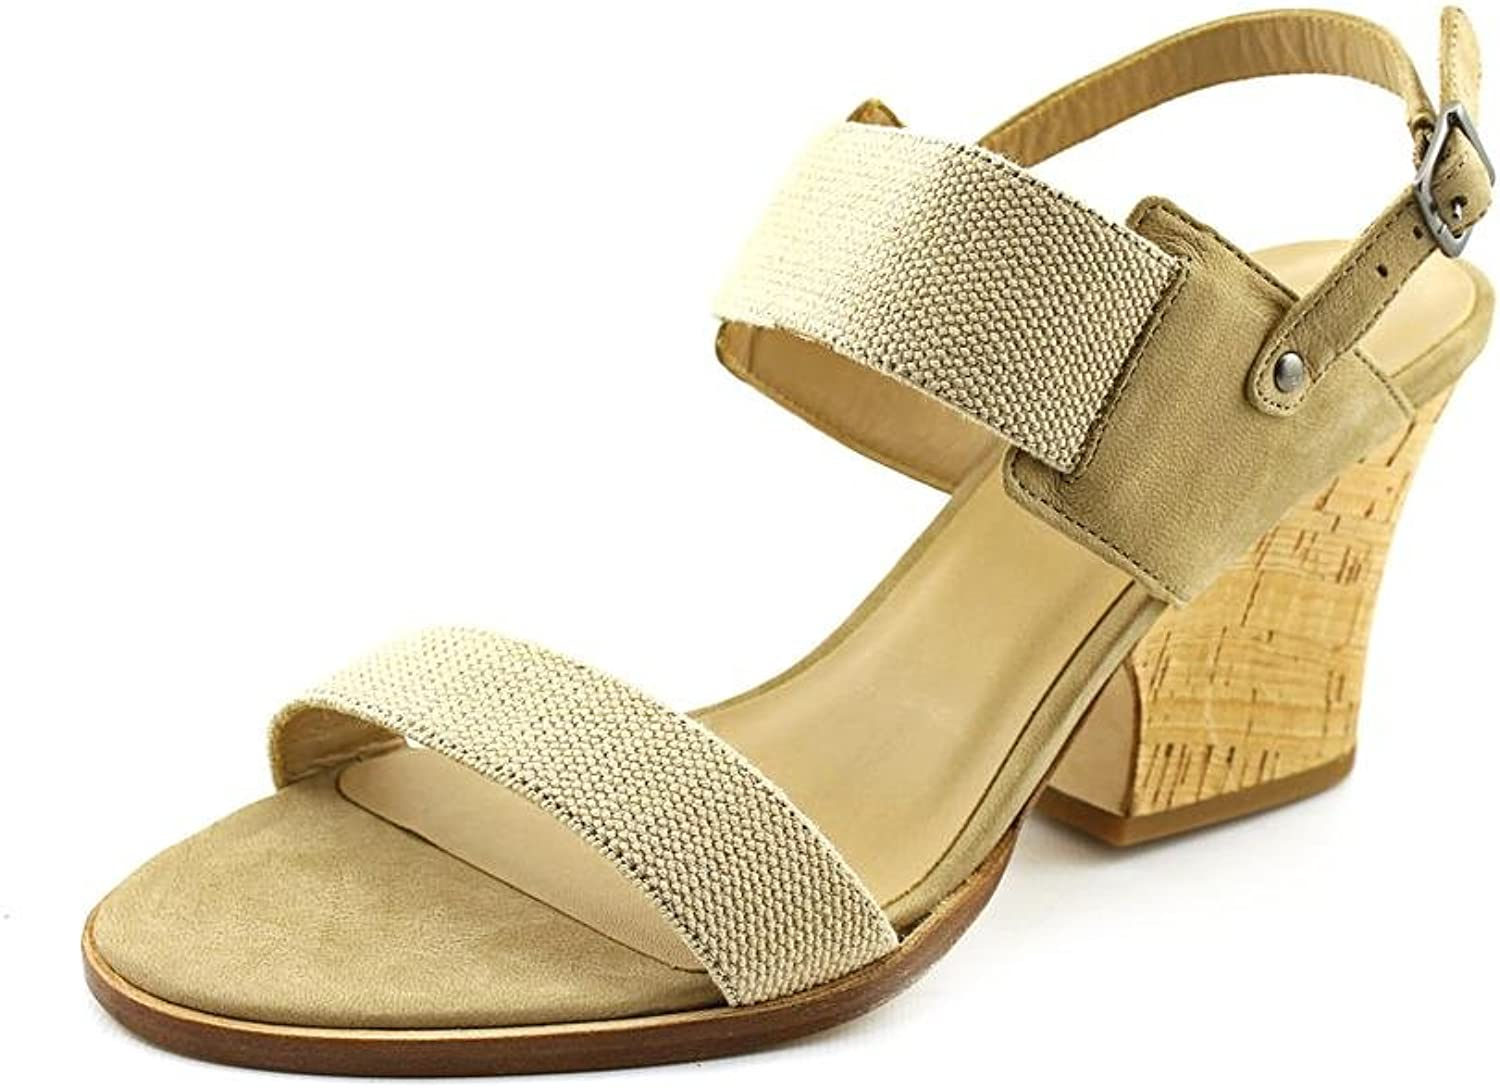 Eileen Fisher Plex Womens US Size 9 Nude Leather Wedge Sandals shoes